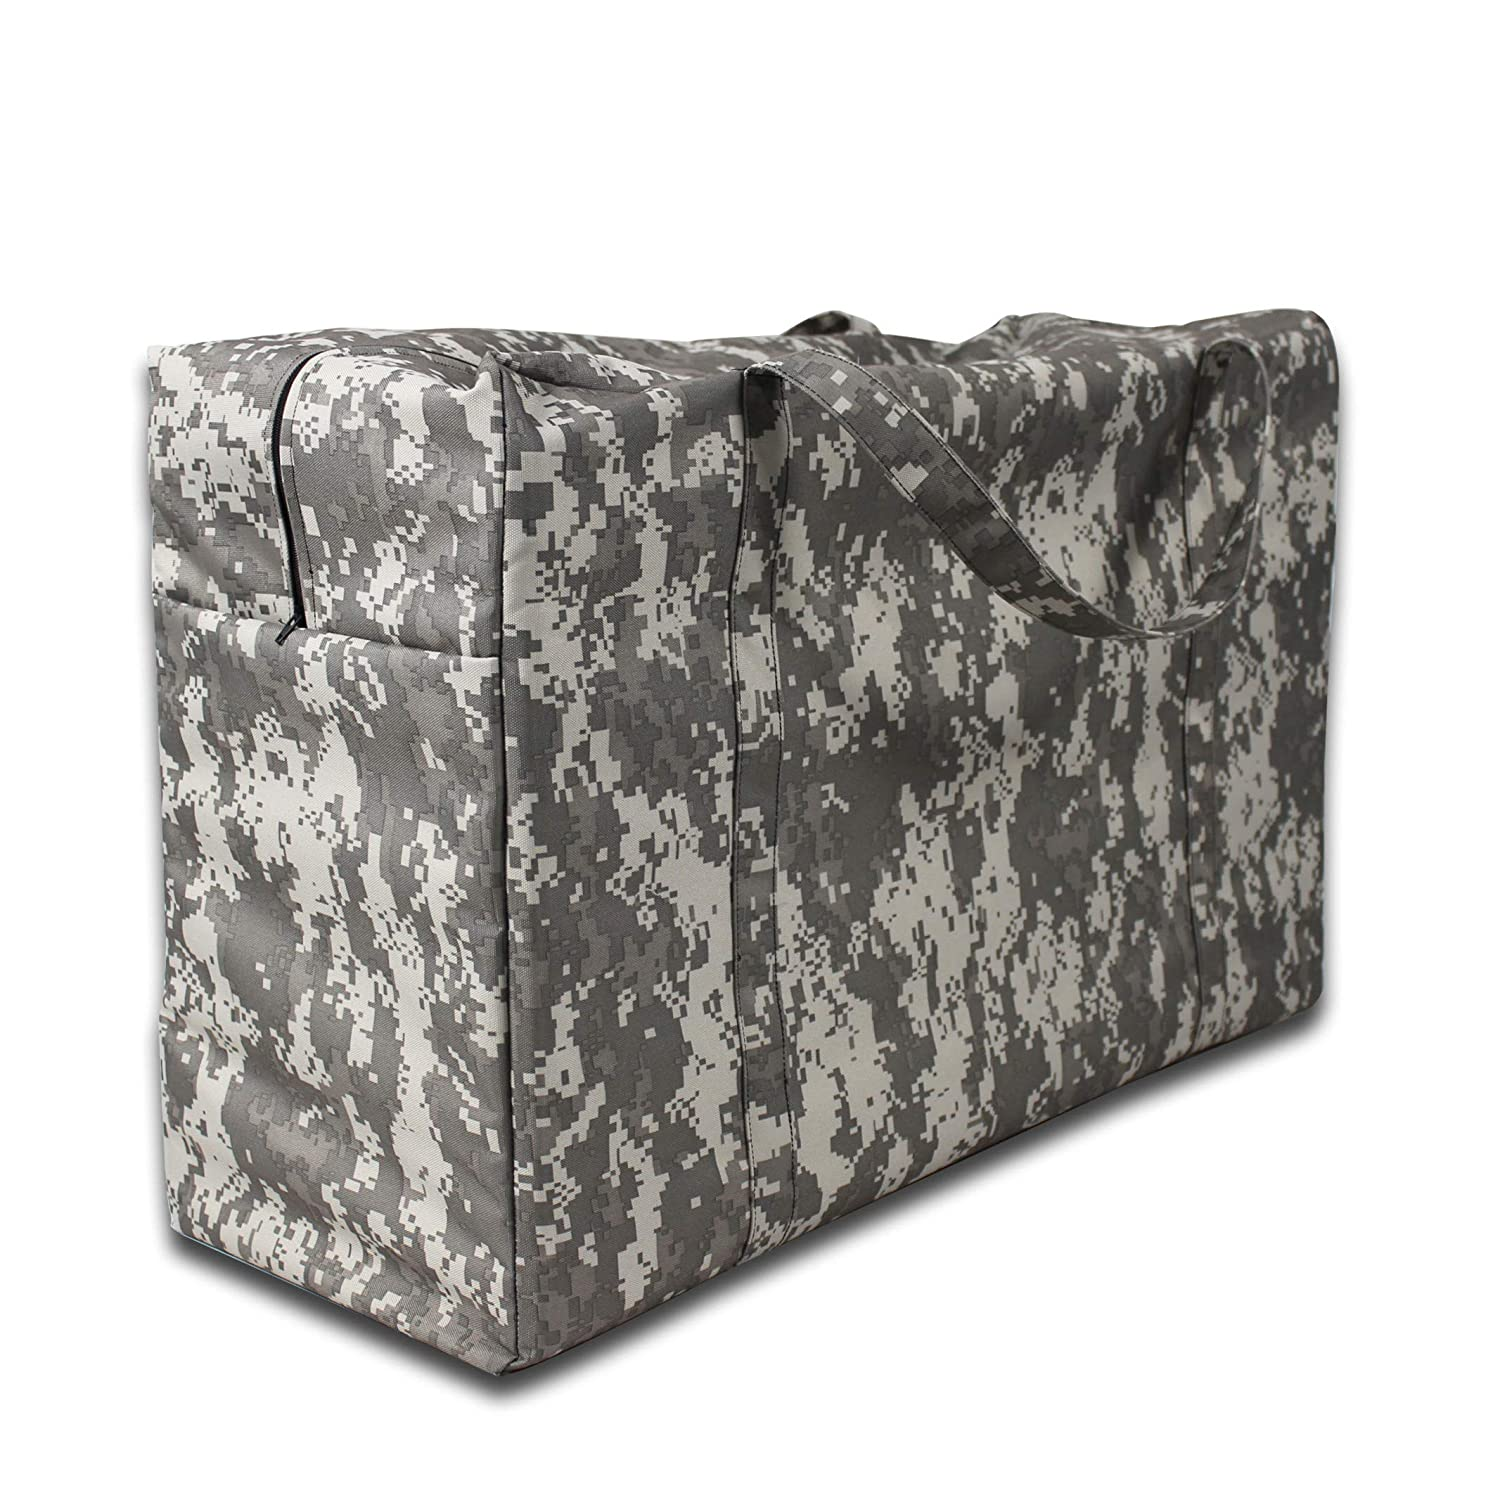 TRUESTAR Patio Cushion Cover Storage Bag Outdoor Water Resistant dust-Proof Non-Woven TPU Patio Rectangular Storage Bag Protective Zippered Patio Furniture Cover with Padded Handles, Camouflage